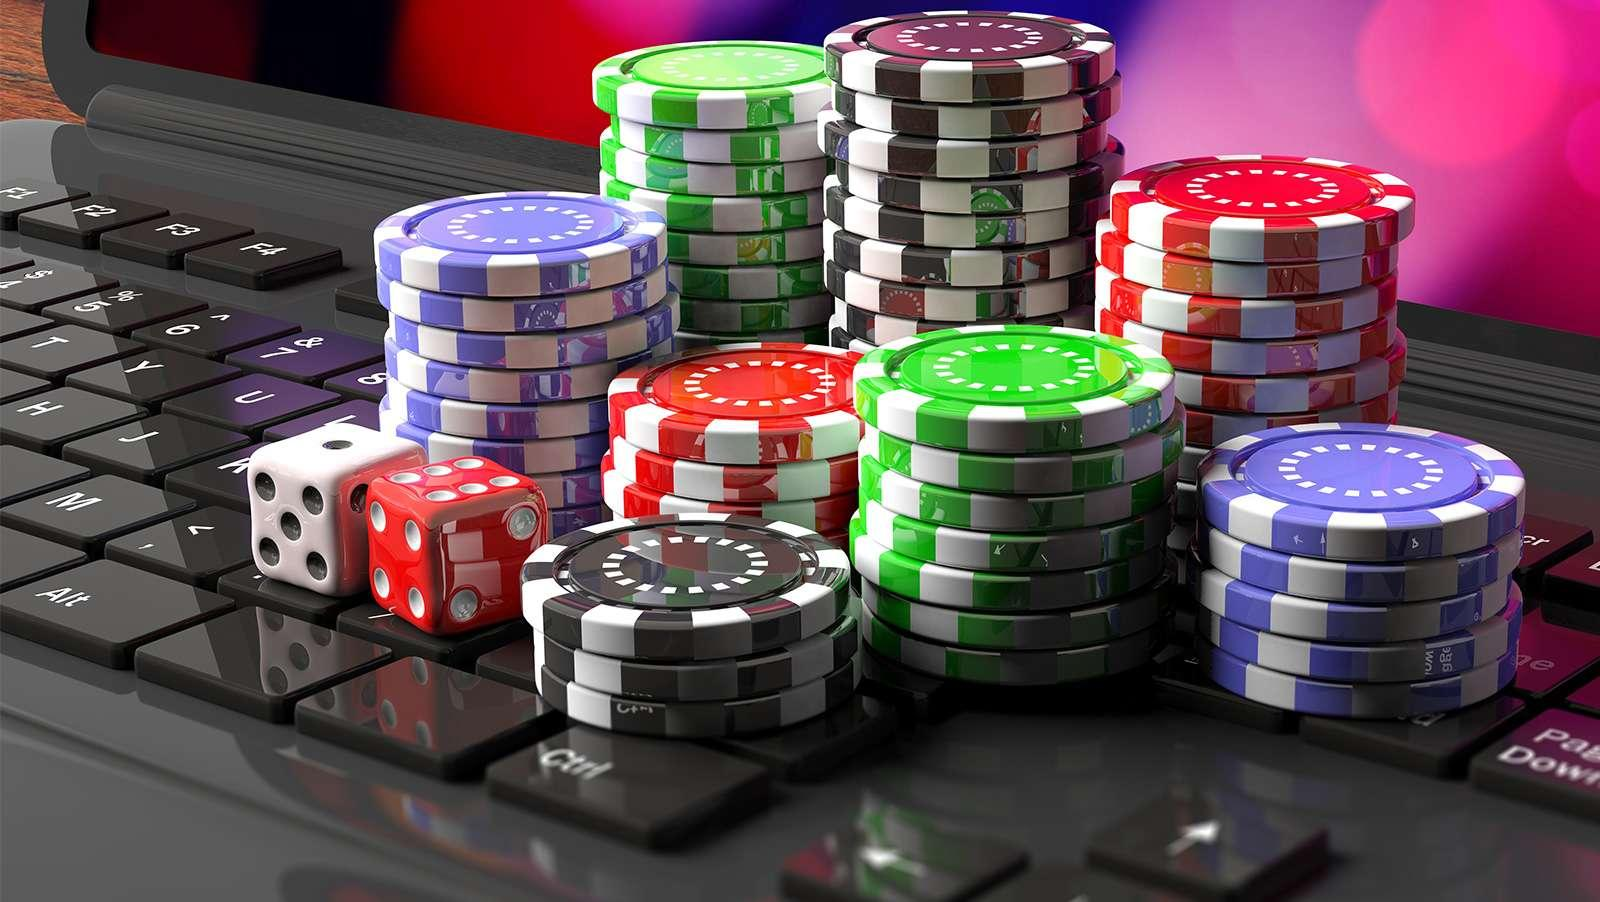 The Future of Casino Gaming: What Are We Looking At?